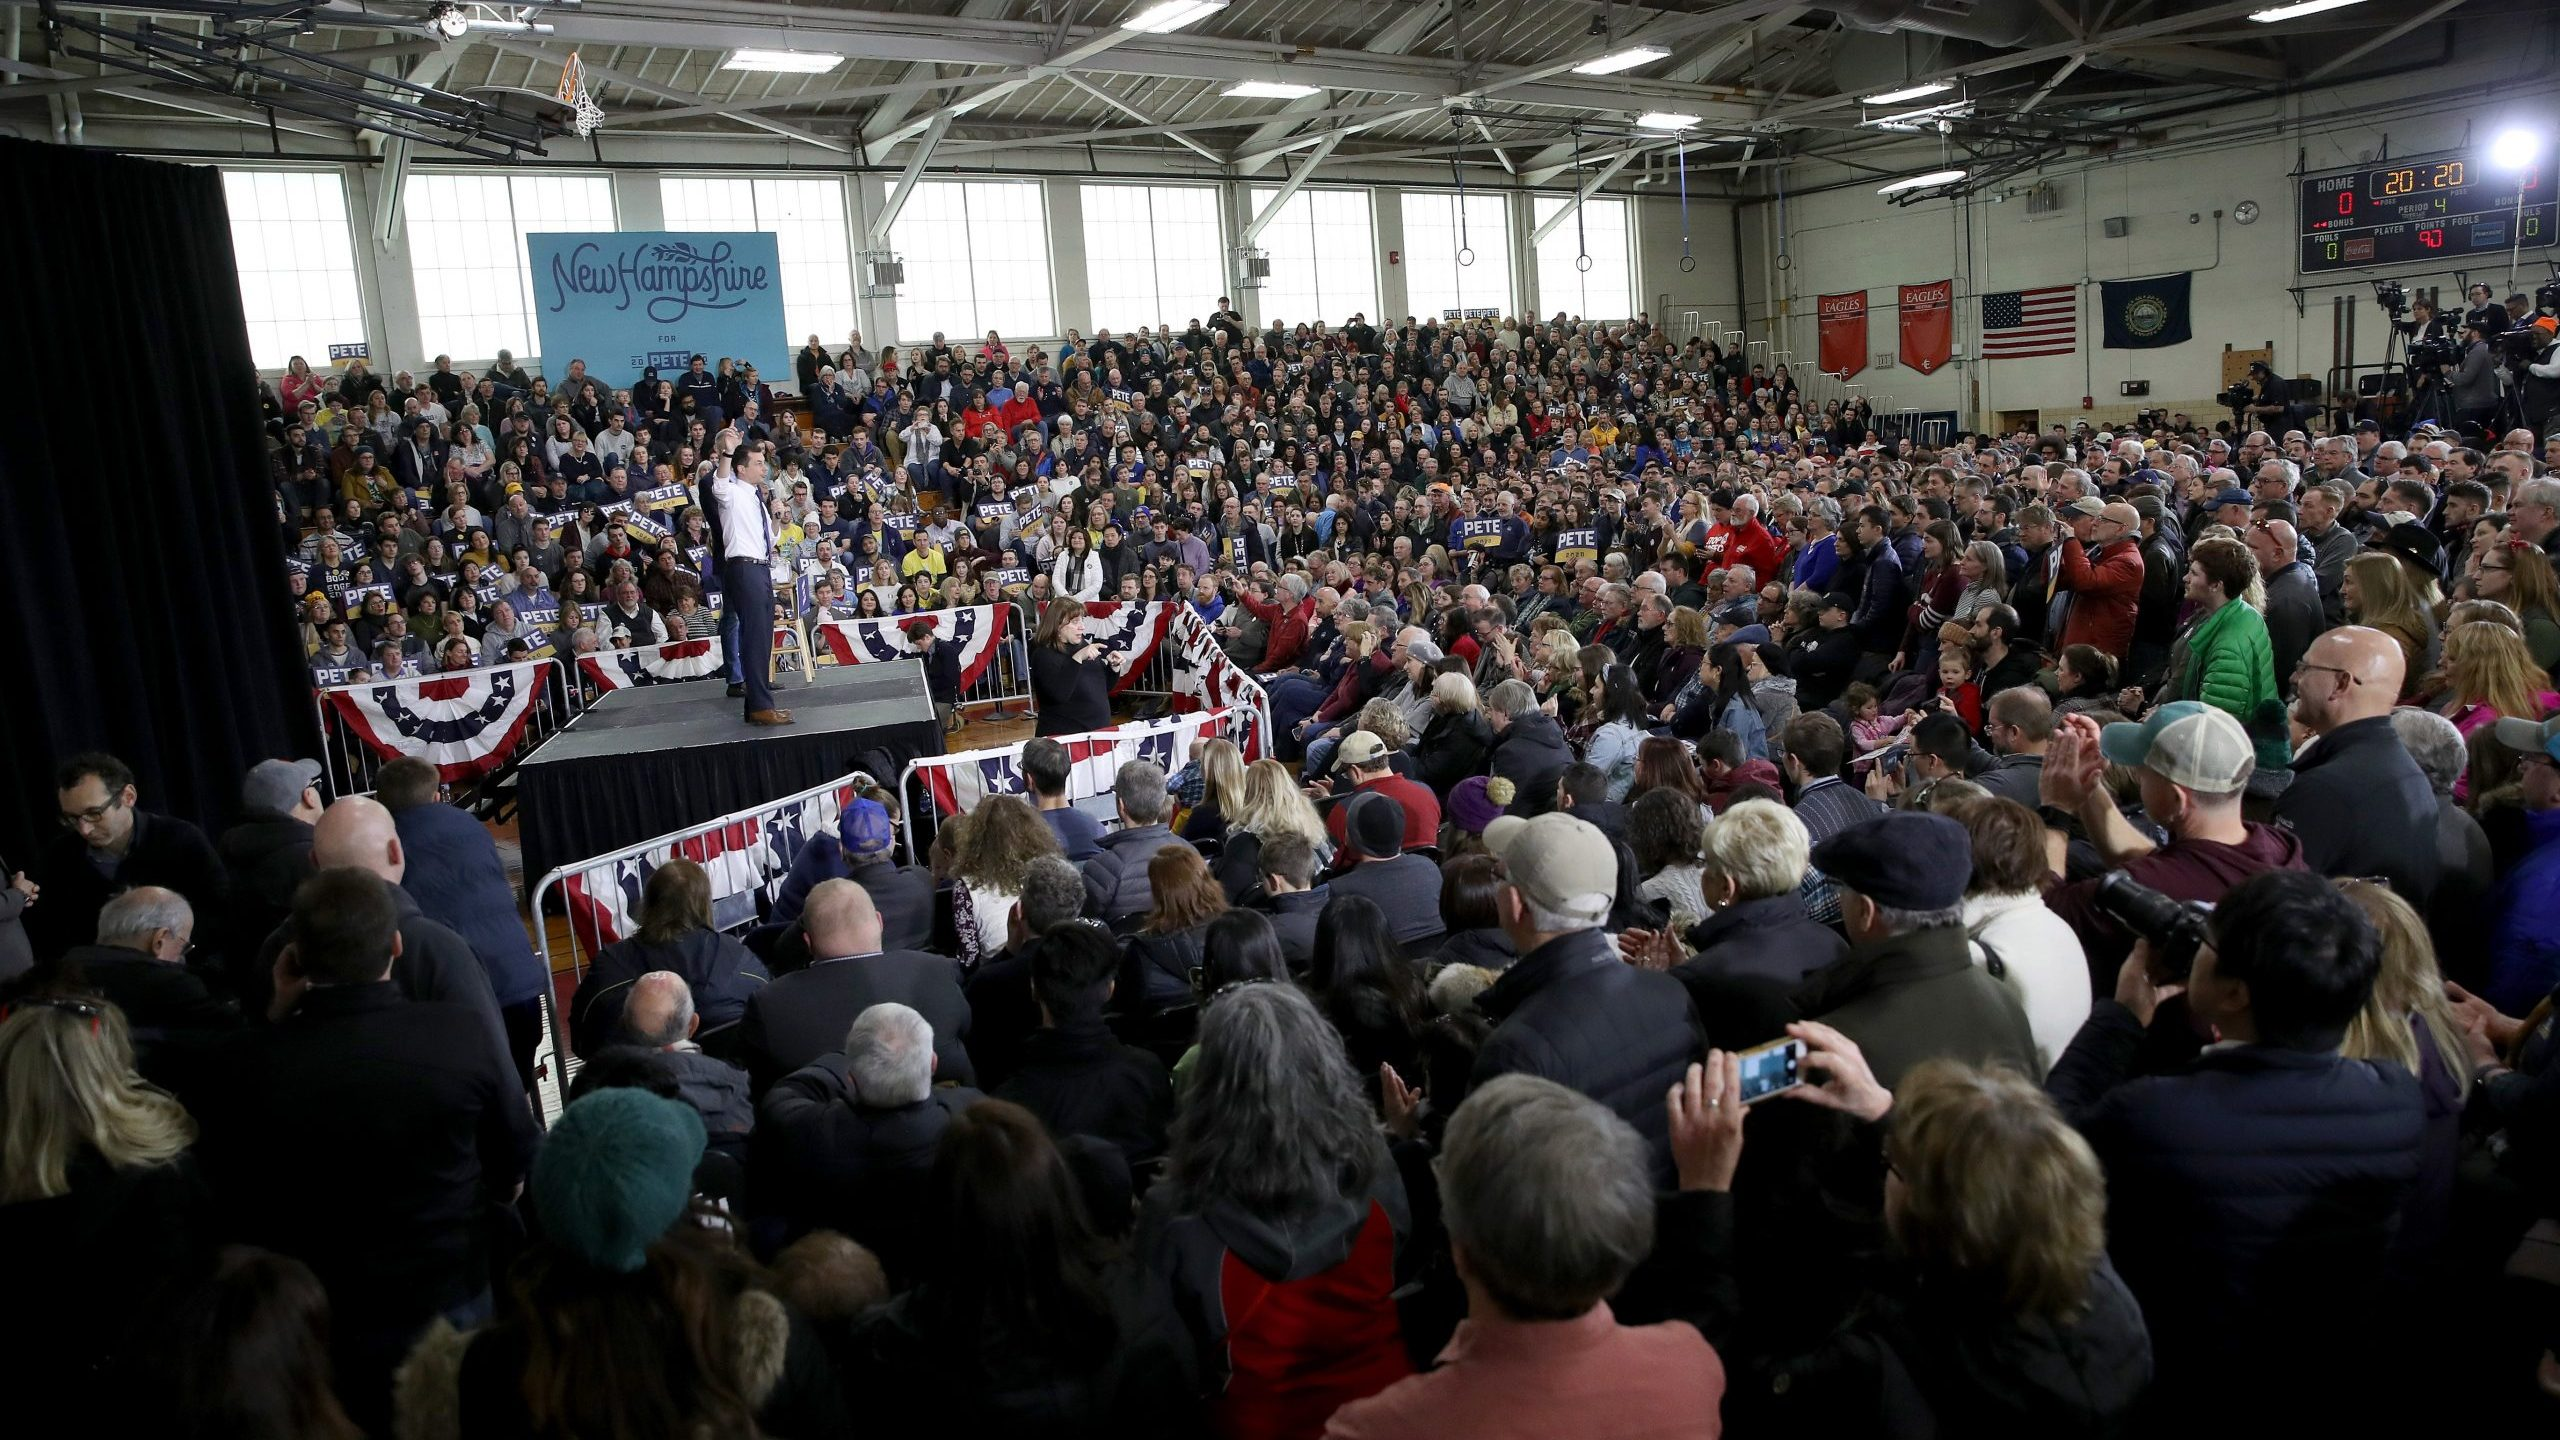 Members of the audience listen as Democratic presidential candidate former South Bend, Indiana Mayor Pete Buttigieg speaks at a Get Out the Vote rally on Feb. 9, 2020, in Nashua, New Hampshire. (Credit: Win McNamee/Getty Images)